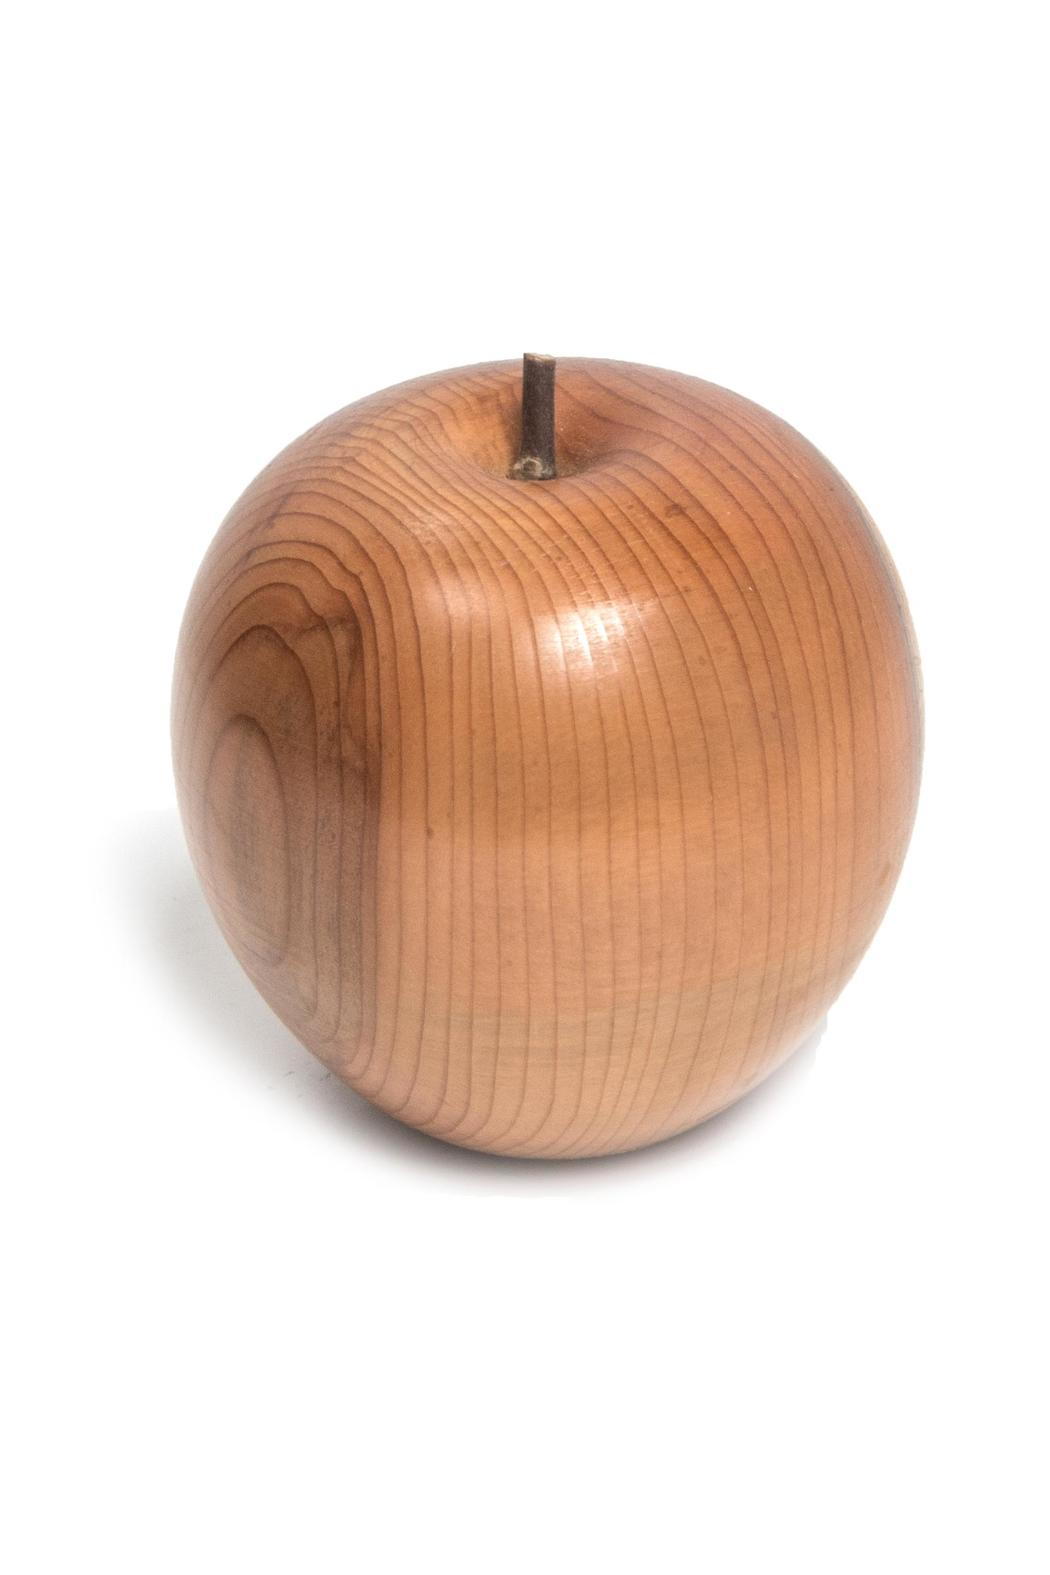 eliska decorative wooden apple from maryleboneeliská — shoptiques